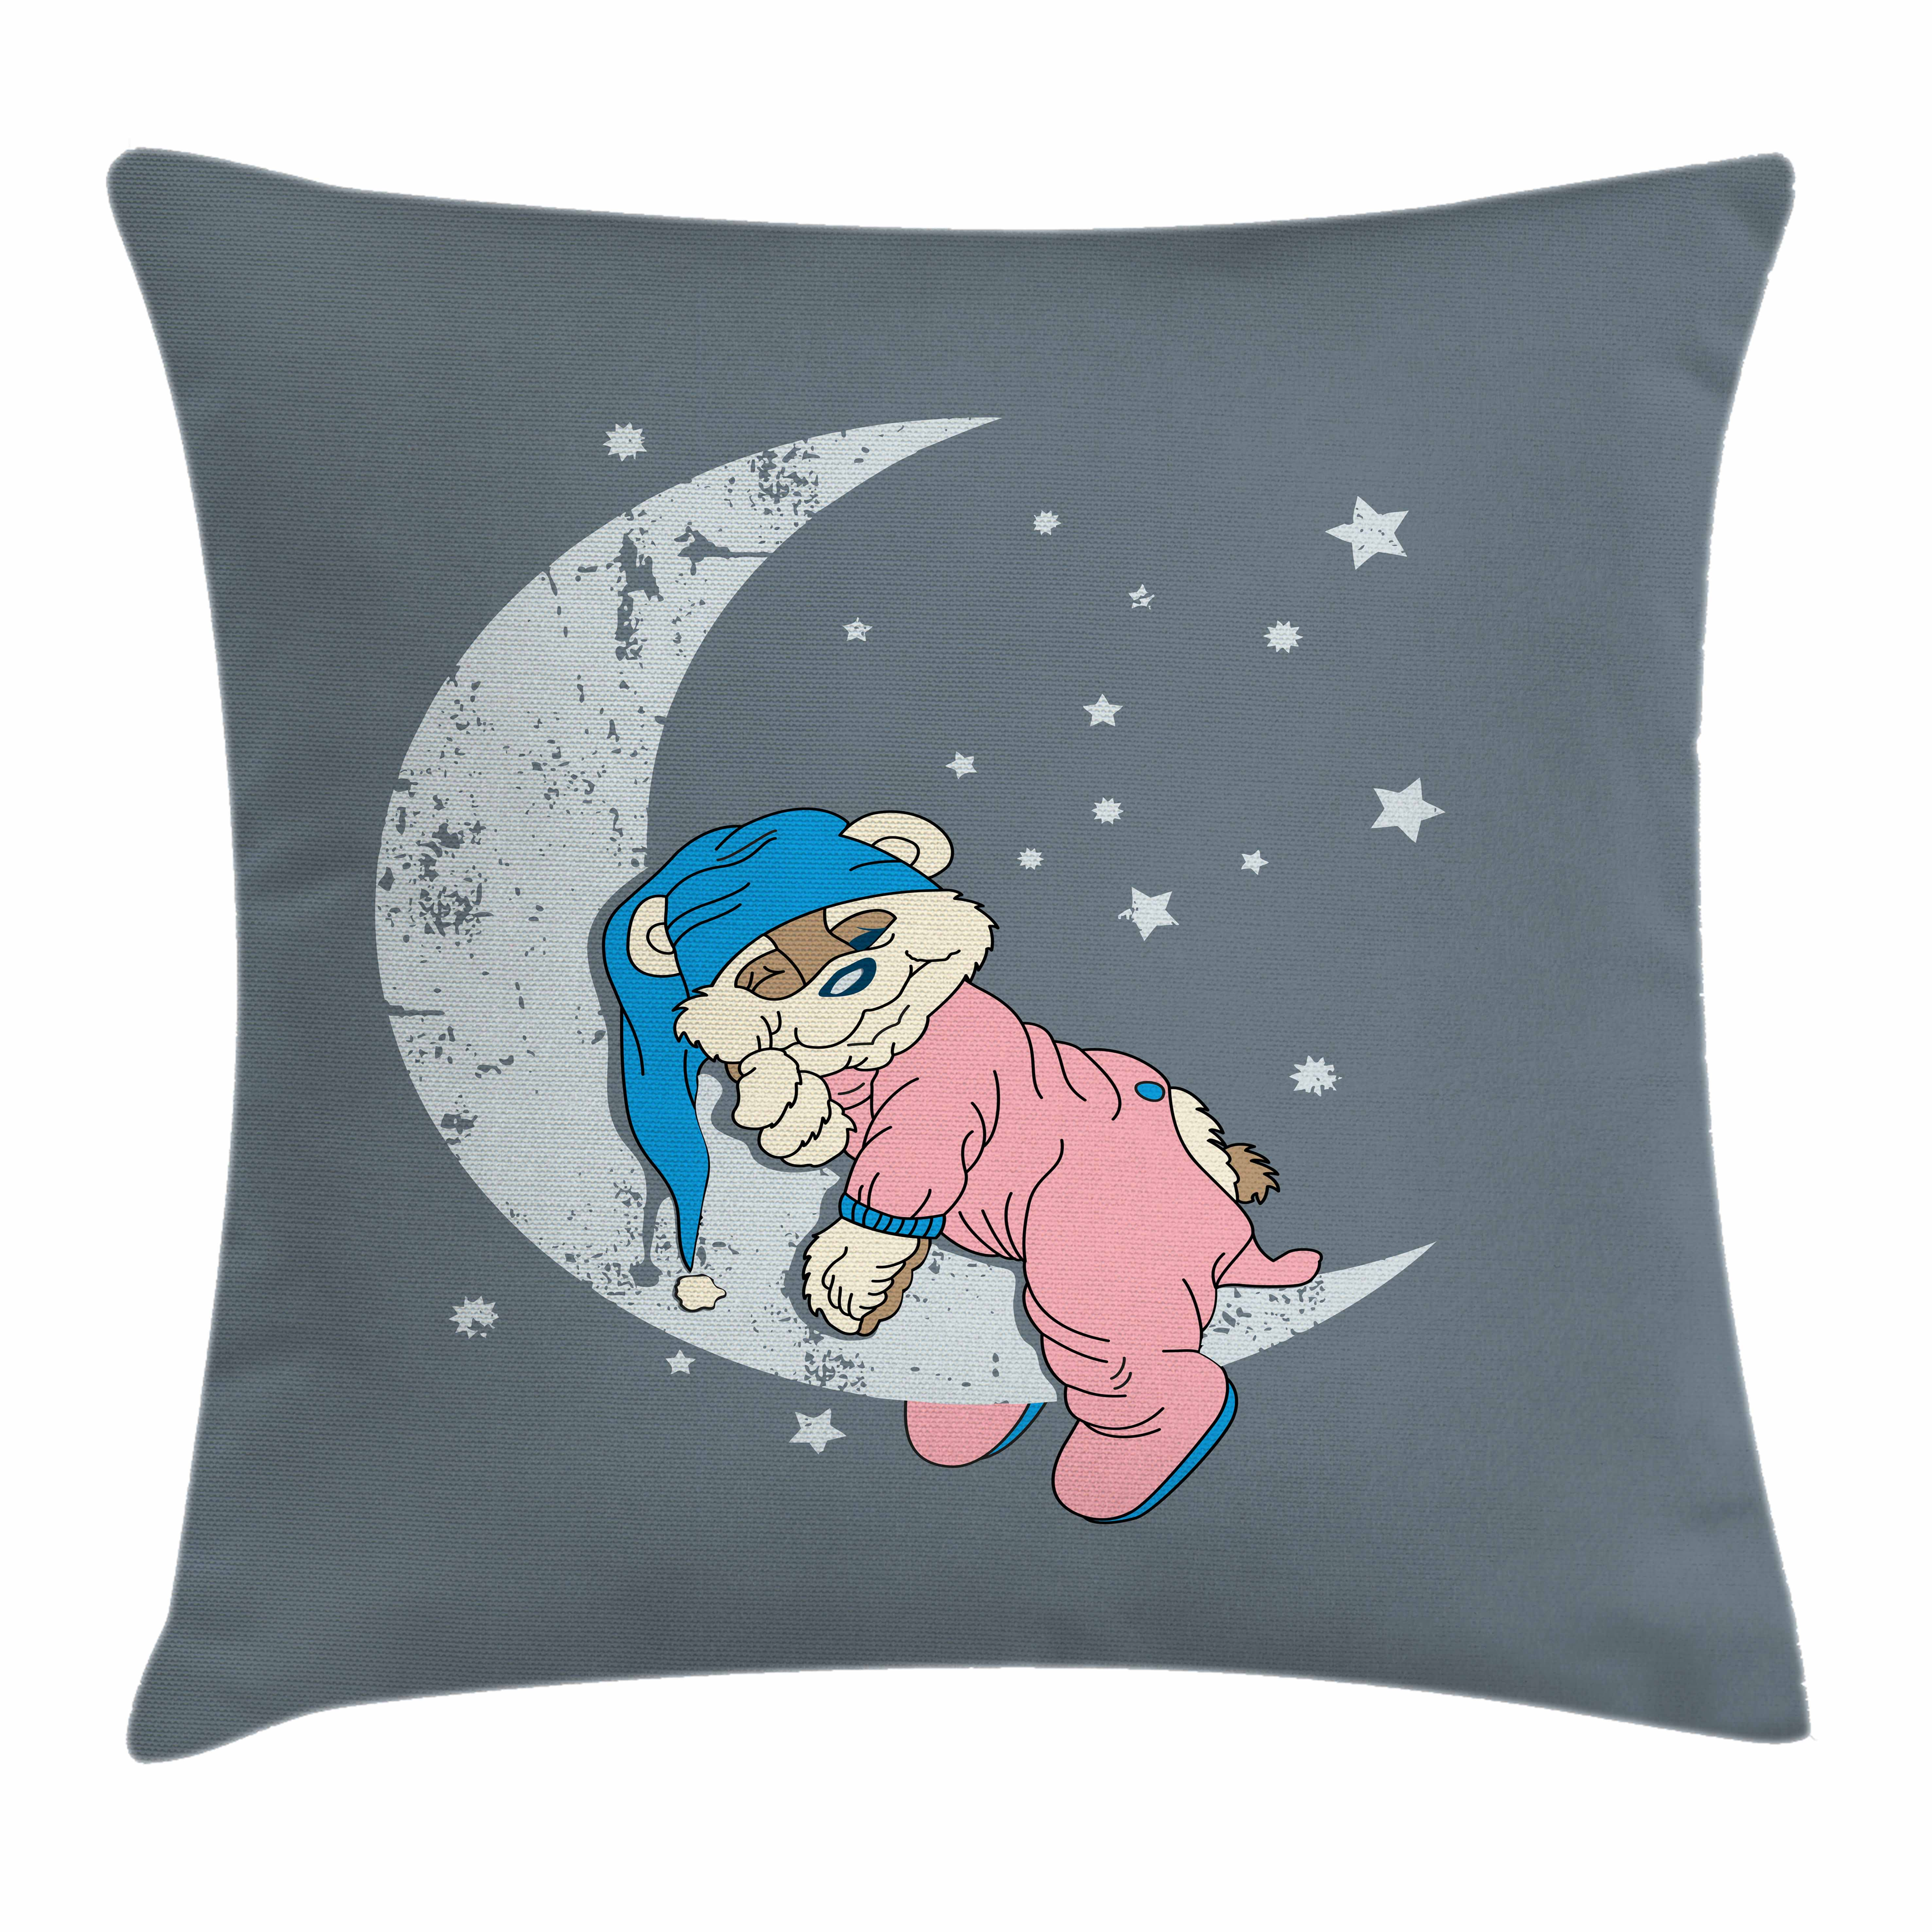 Bear Throw Pillow Cushion Cover, Cute Kids Design with a Baby Bear in Pajamas Sleeping on the Grungy Moon, Decorative Square Accent Pillow Case, 16 X 16 Inches, Bluegrey Pink Beige, by Ambesonne